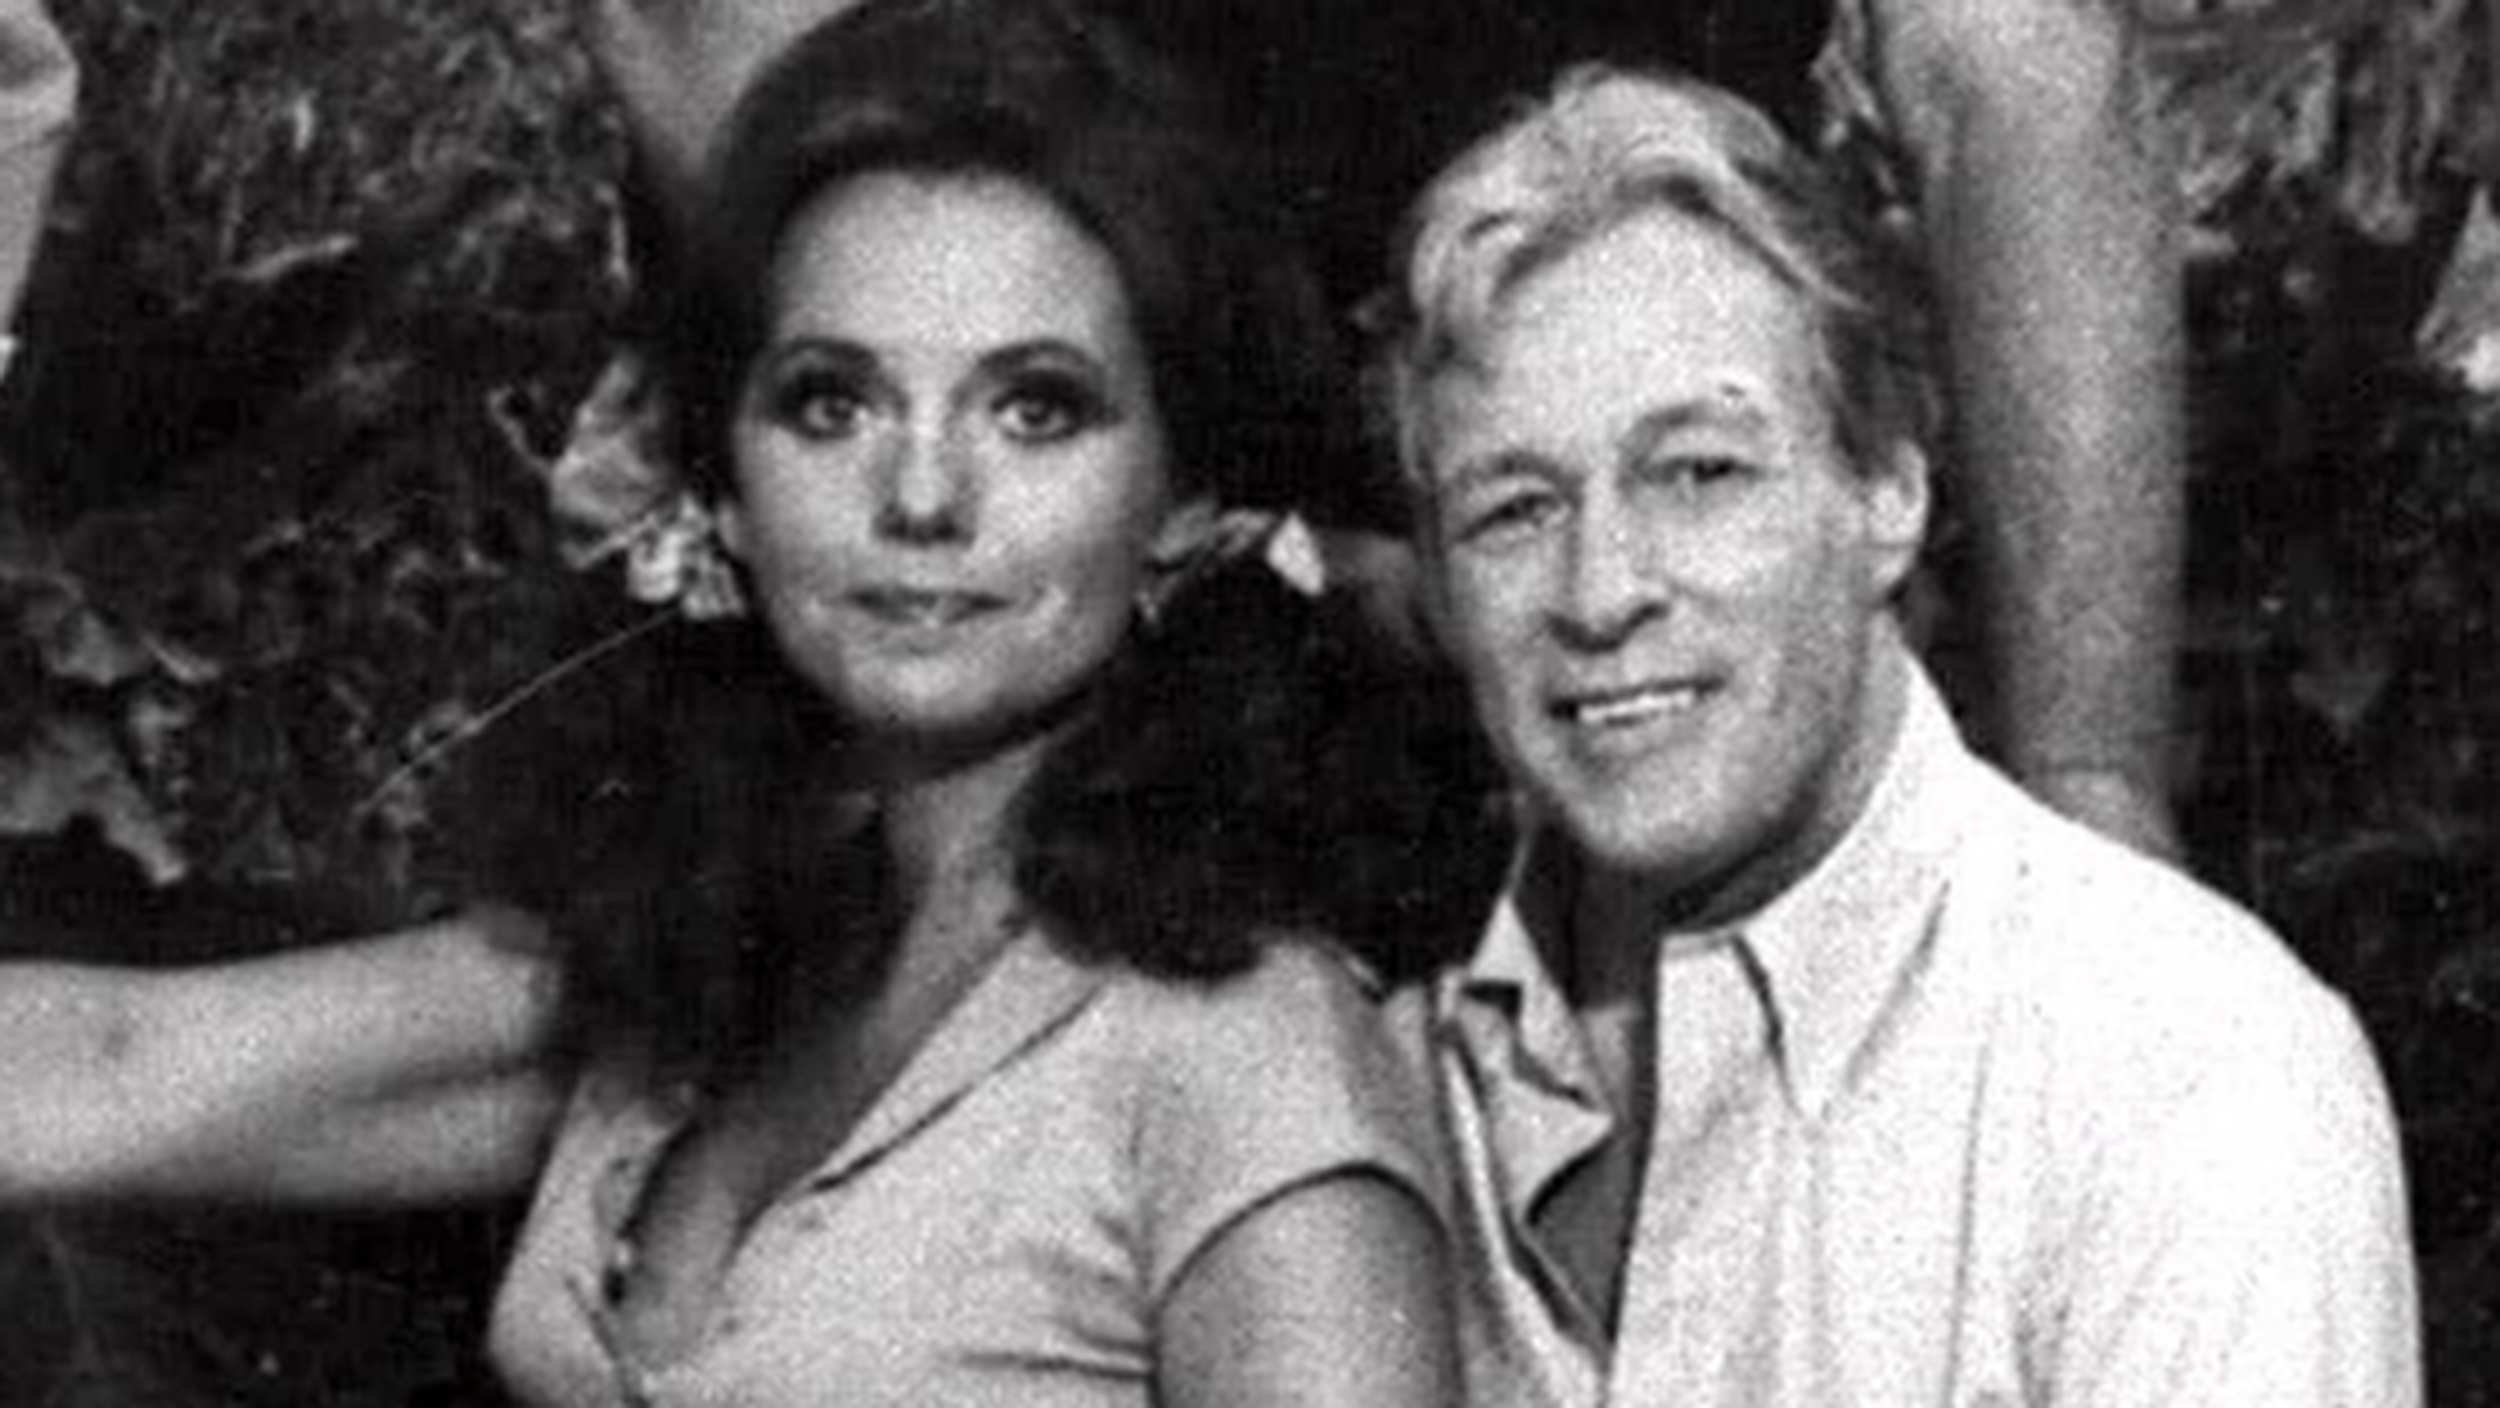 Image: Russell Johnson and Dawn Wells